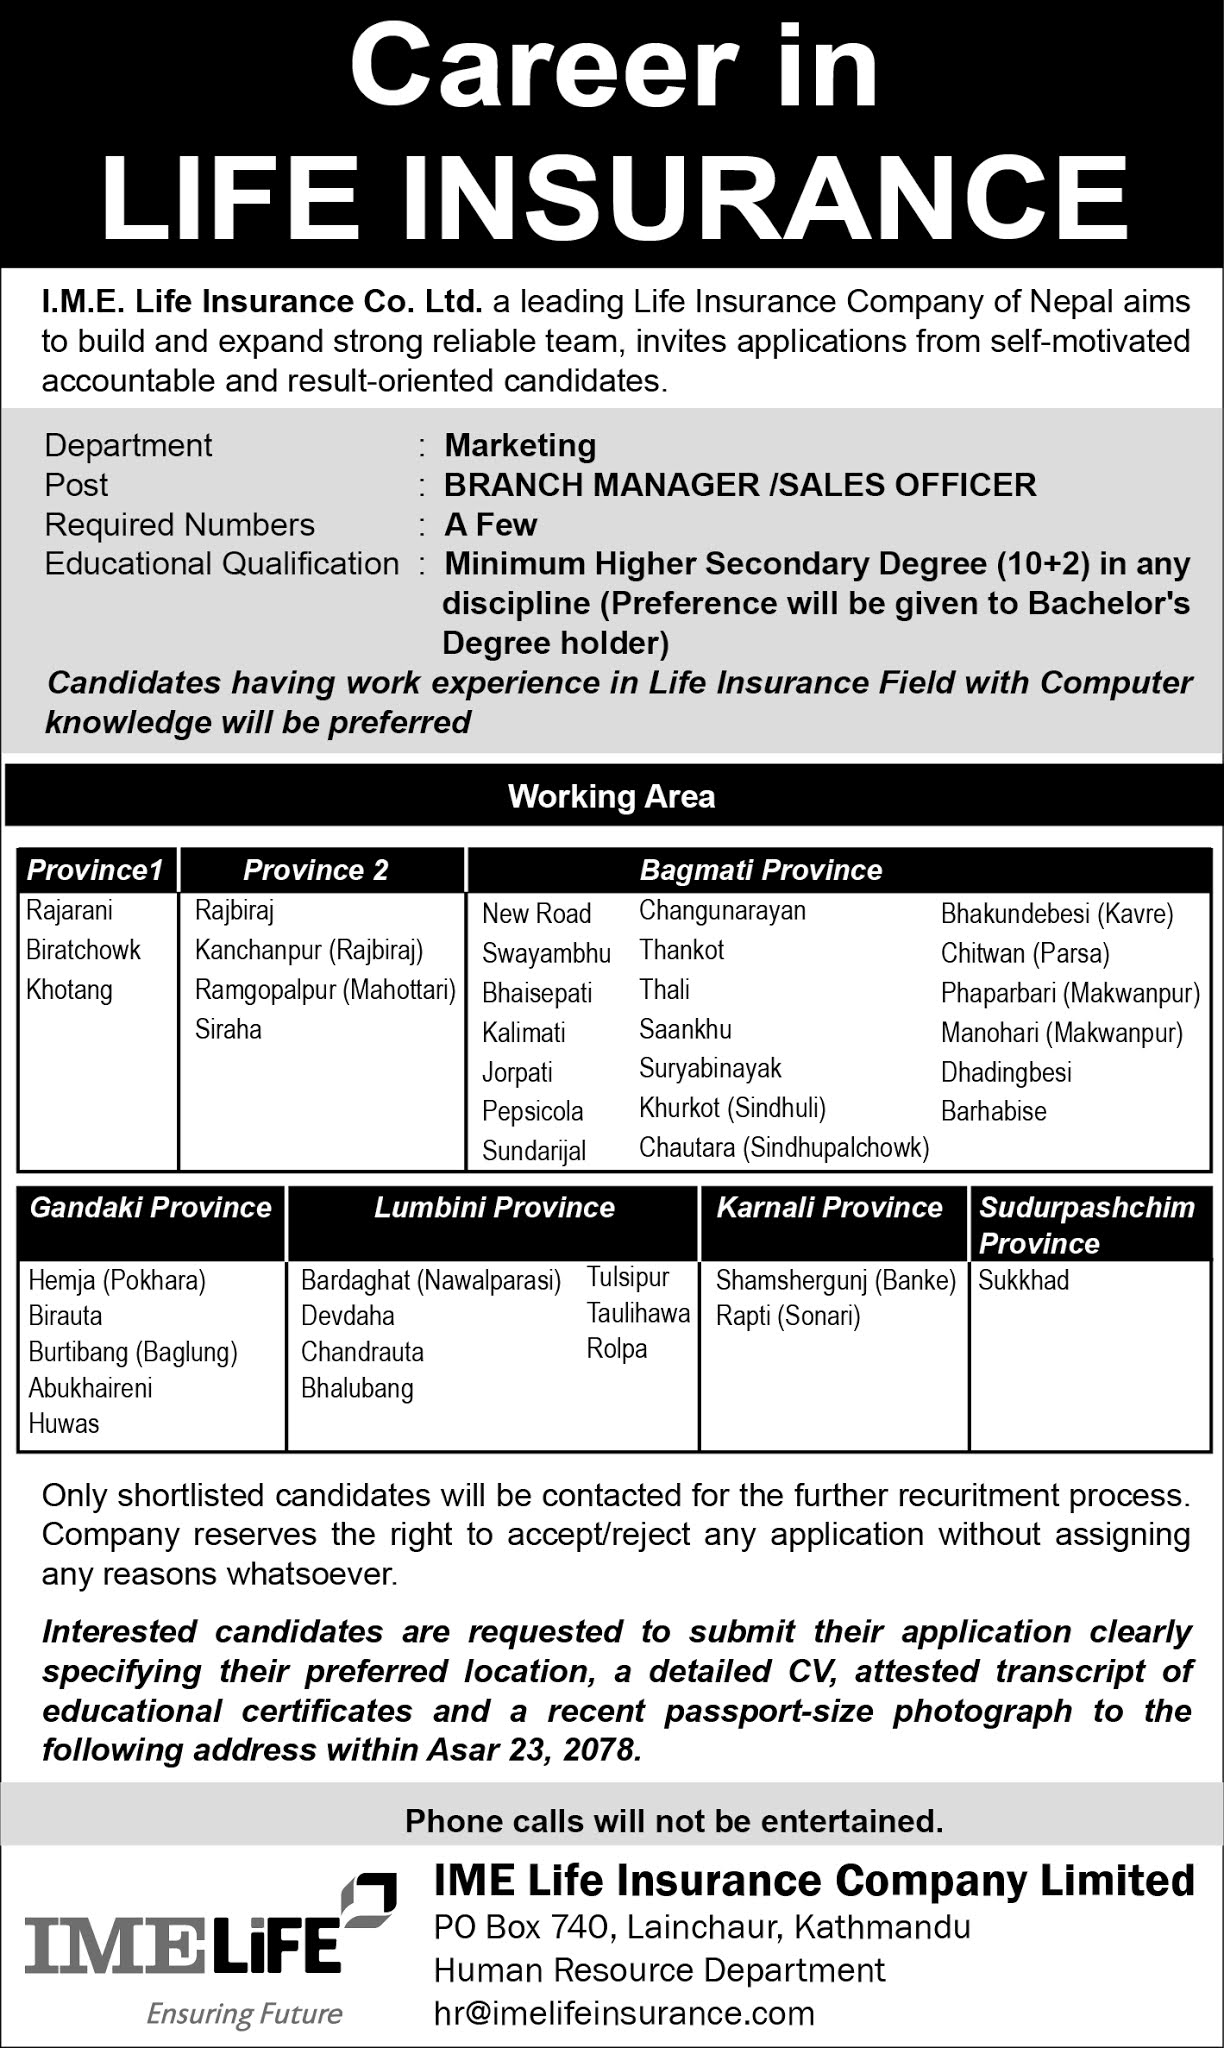 IME Life Insurance Company  Job Vacancy for Branch Manager and Sales Officer